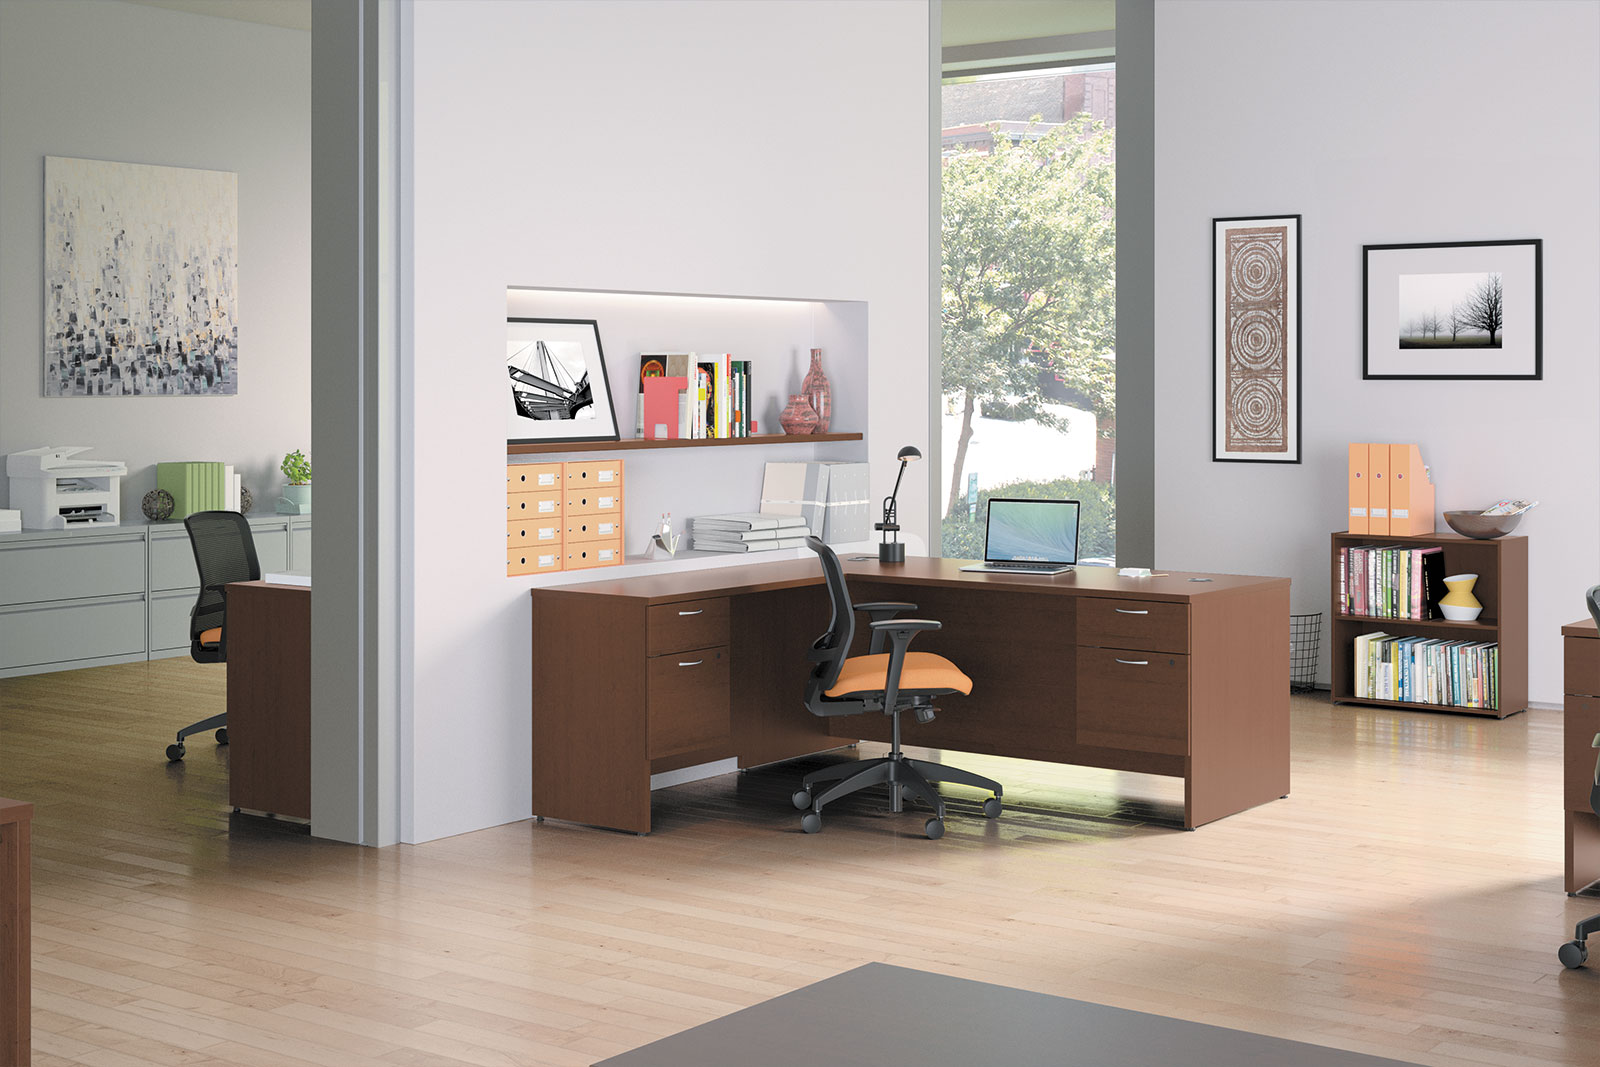 millers-furniture1.jpg